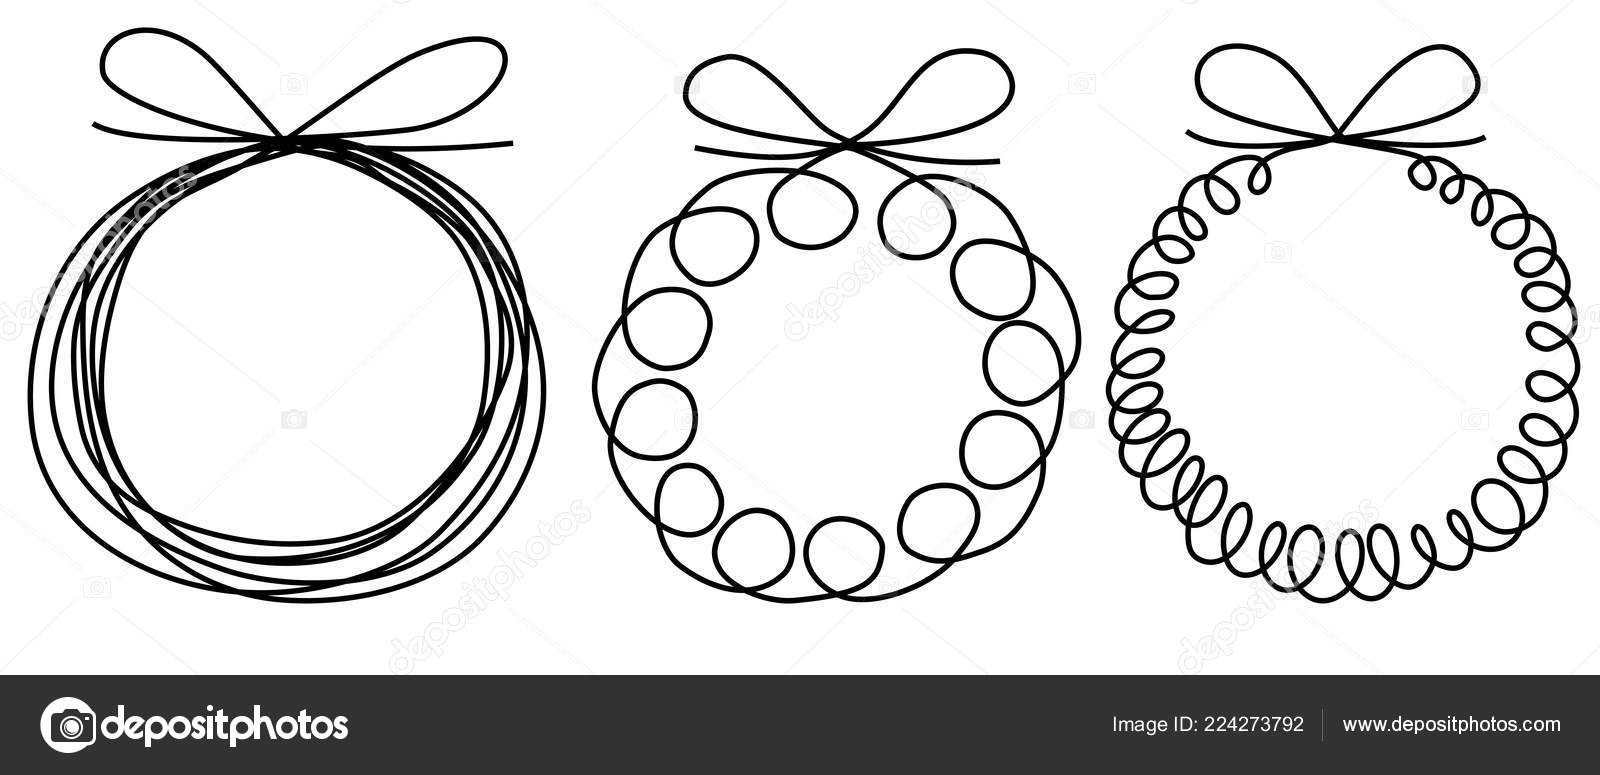 Drawings Of Christmas Wreaths.Christmas Wreath Line Drawing Holiday One Line Drawing